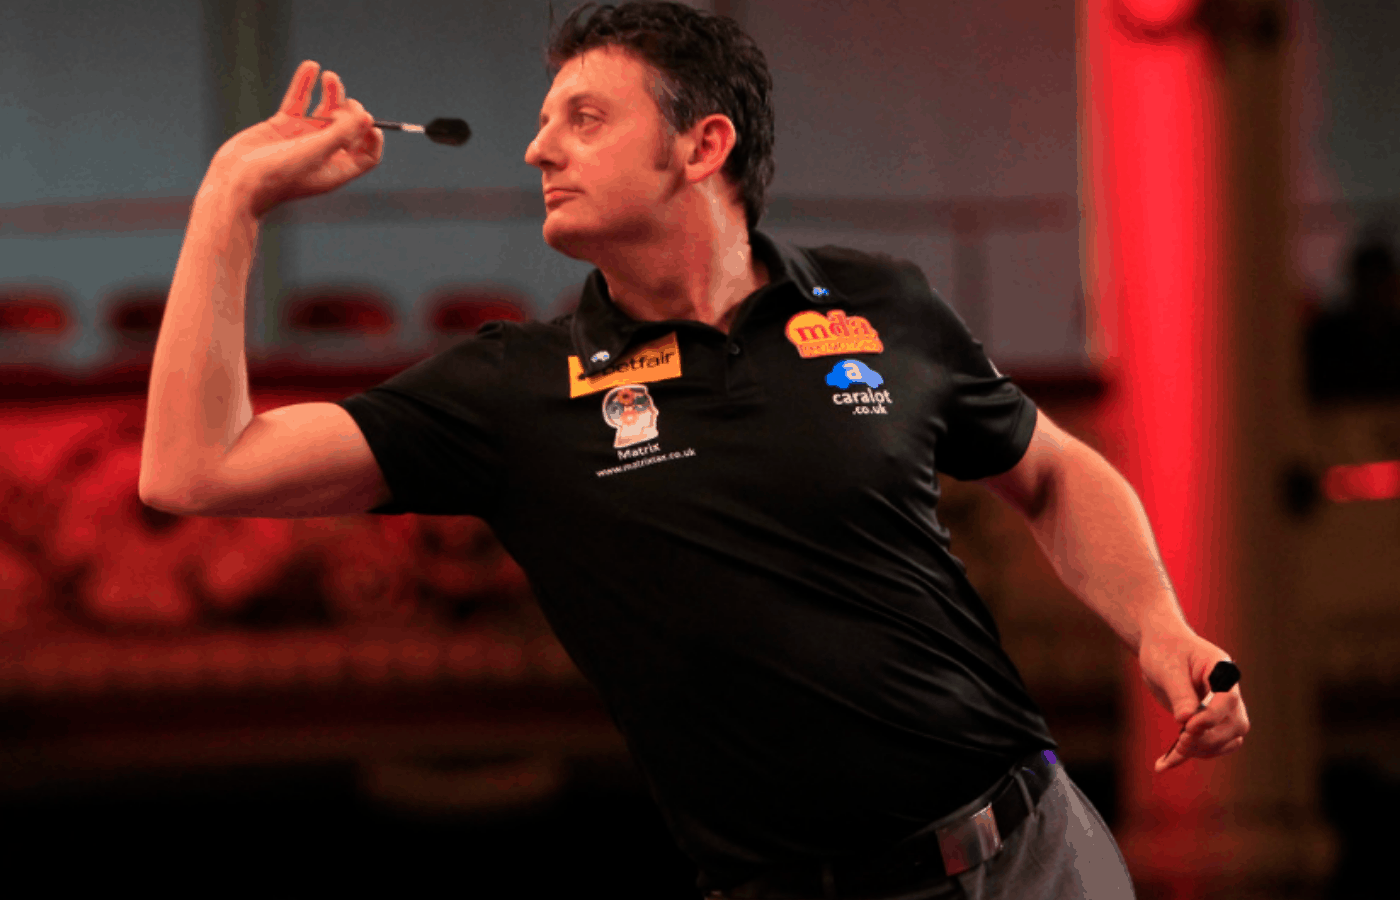 do darts players have coaches